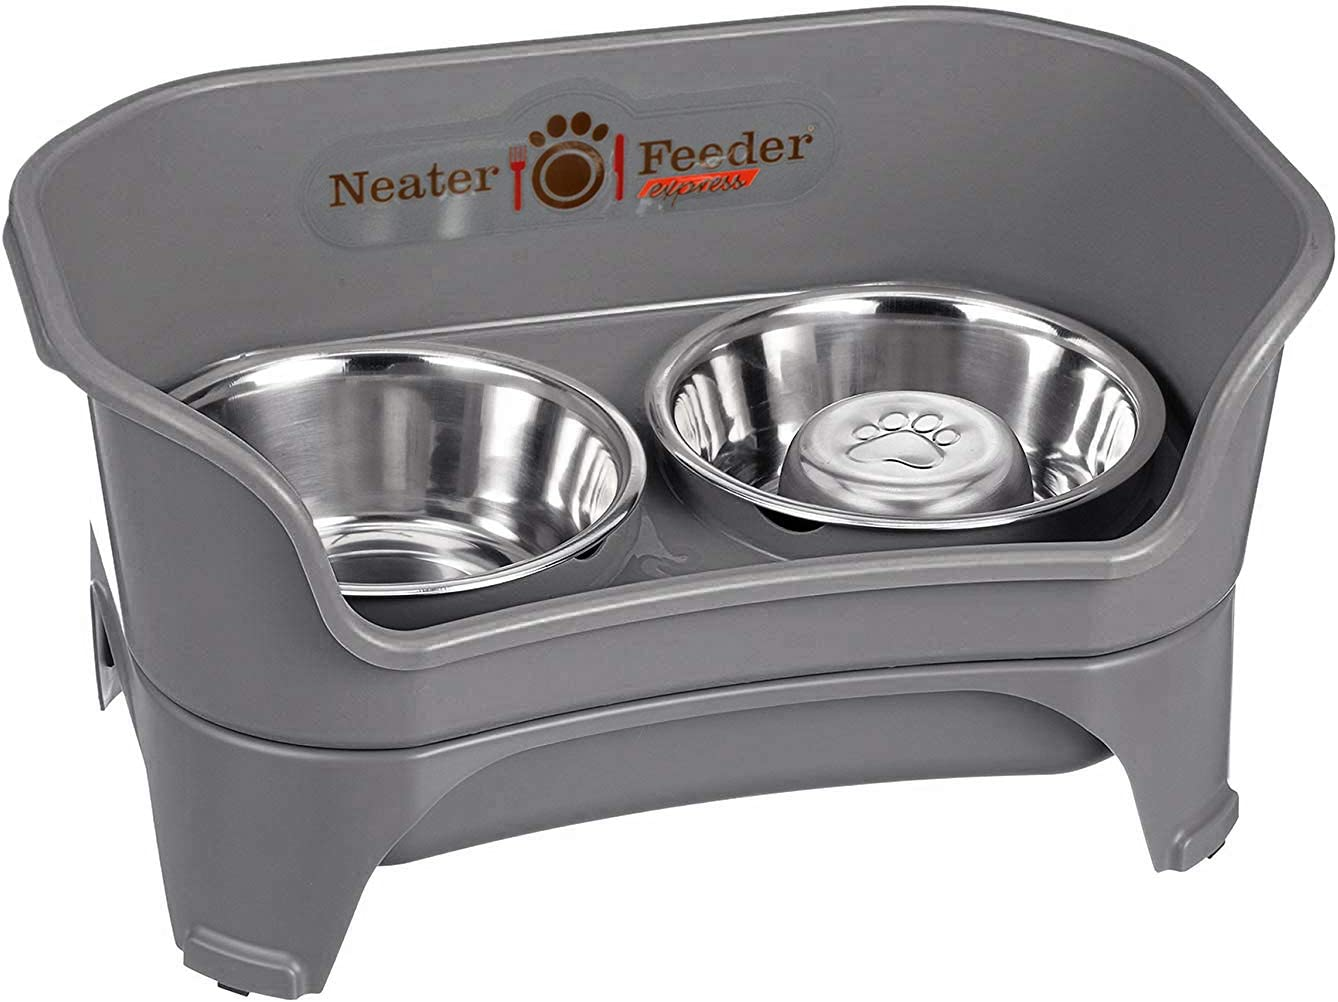 Neater Feeder Express Elevated Dog and Cat Bowls - Raised Pet Dish - Stainless Steel Food and Water Bowls for Small to Large Dogs and Cats